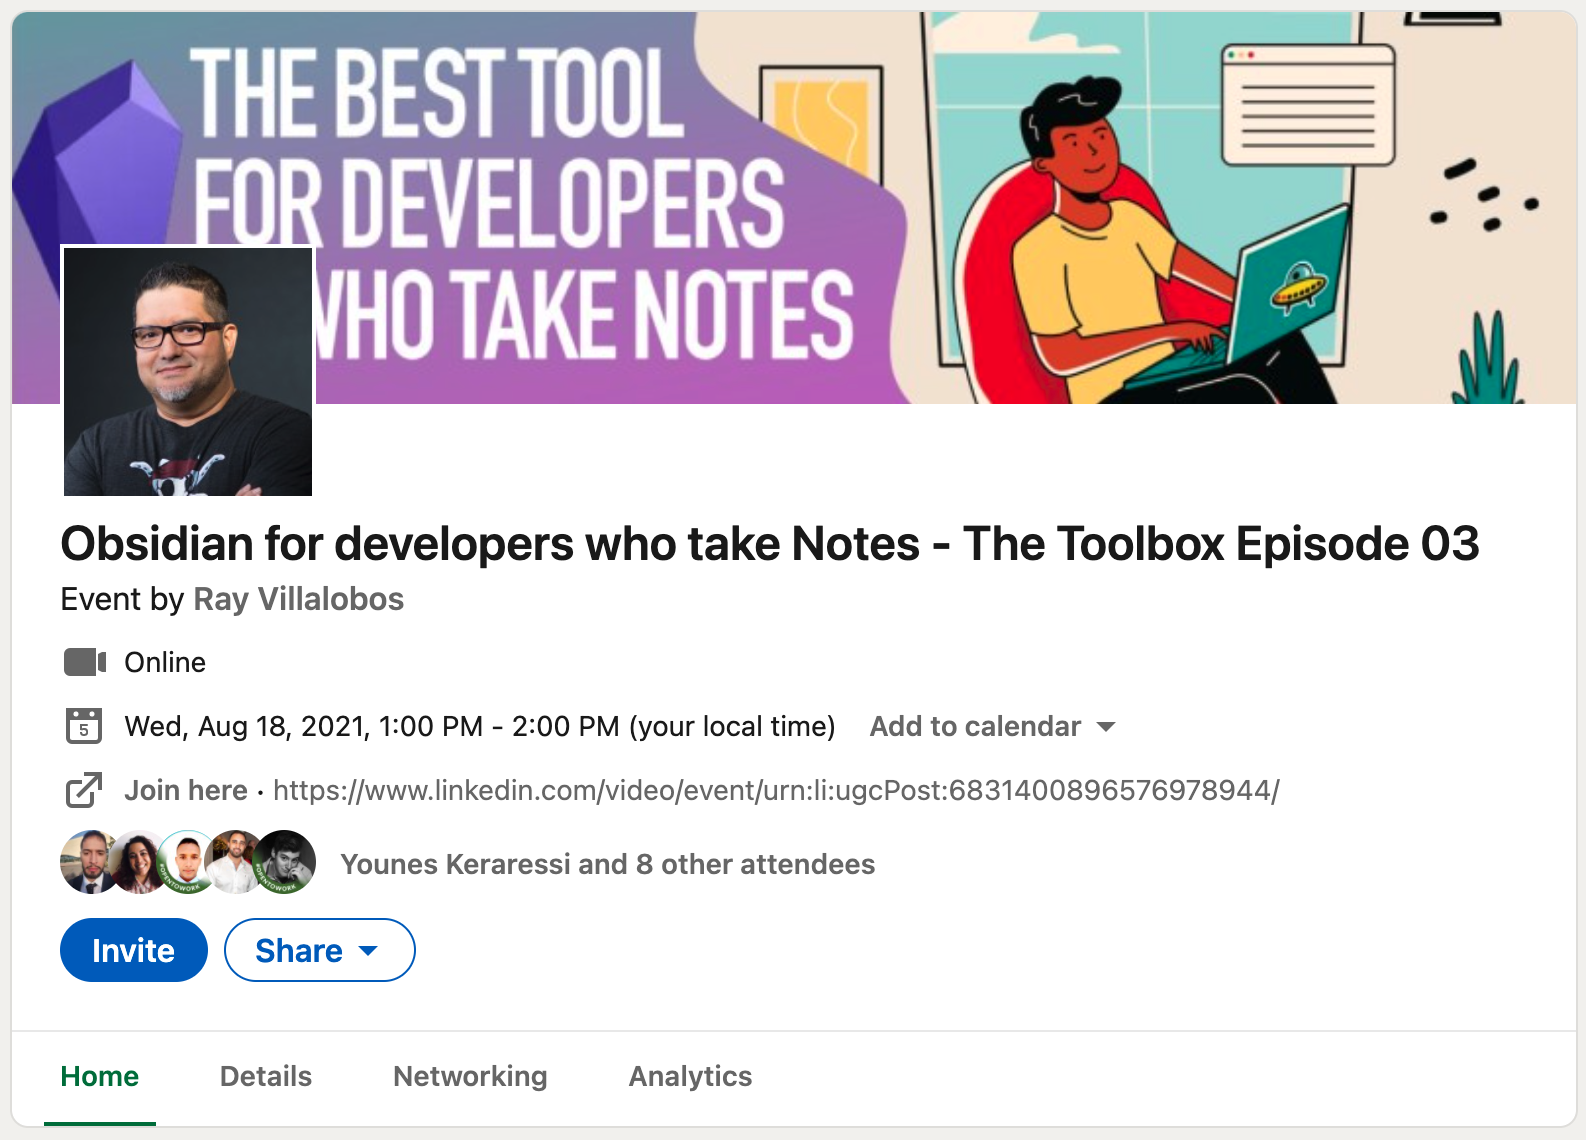 Toolbox Episode 03